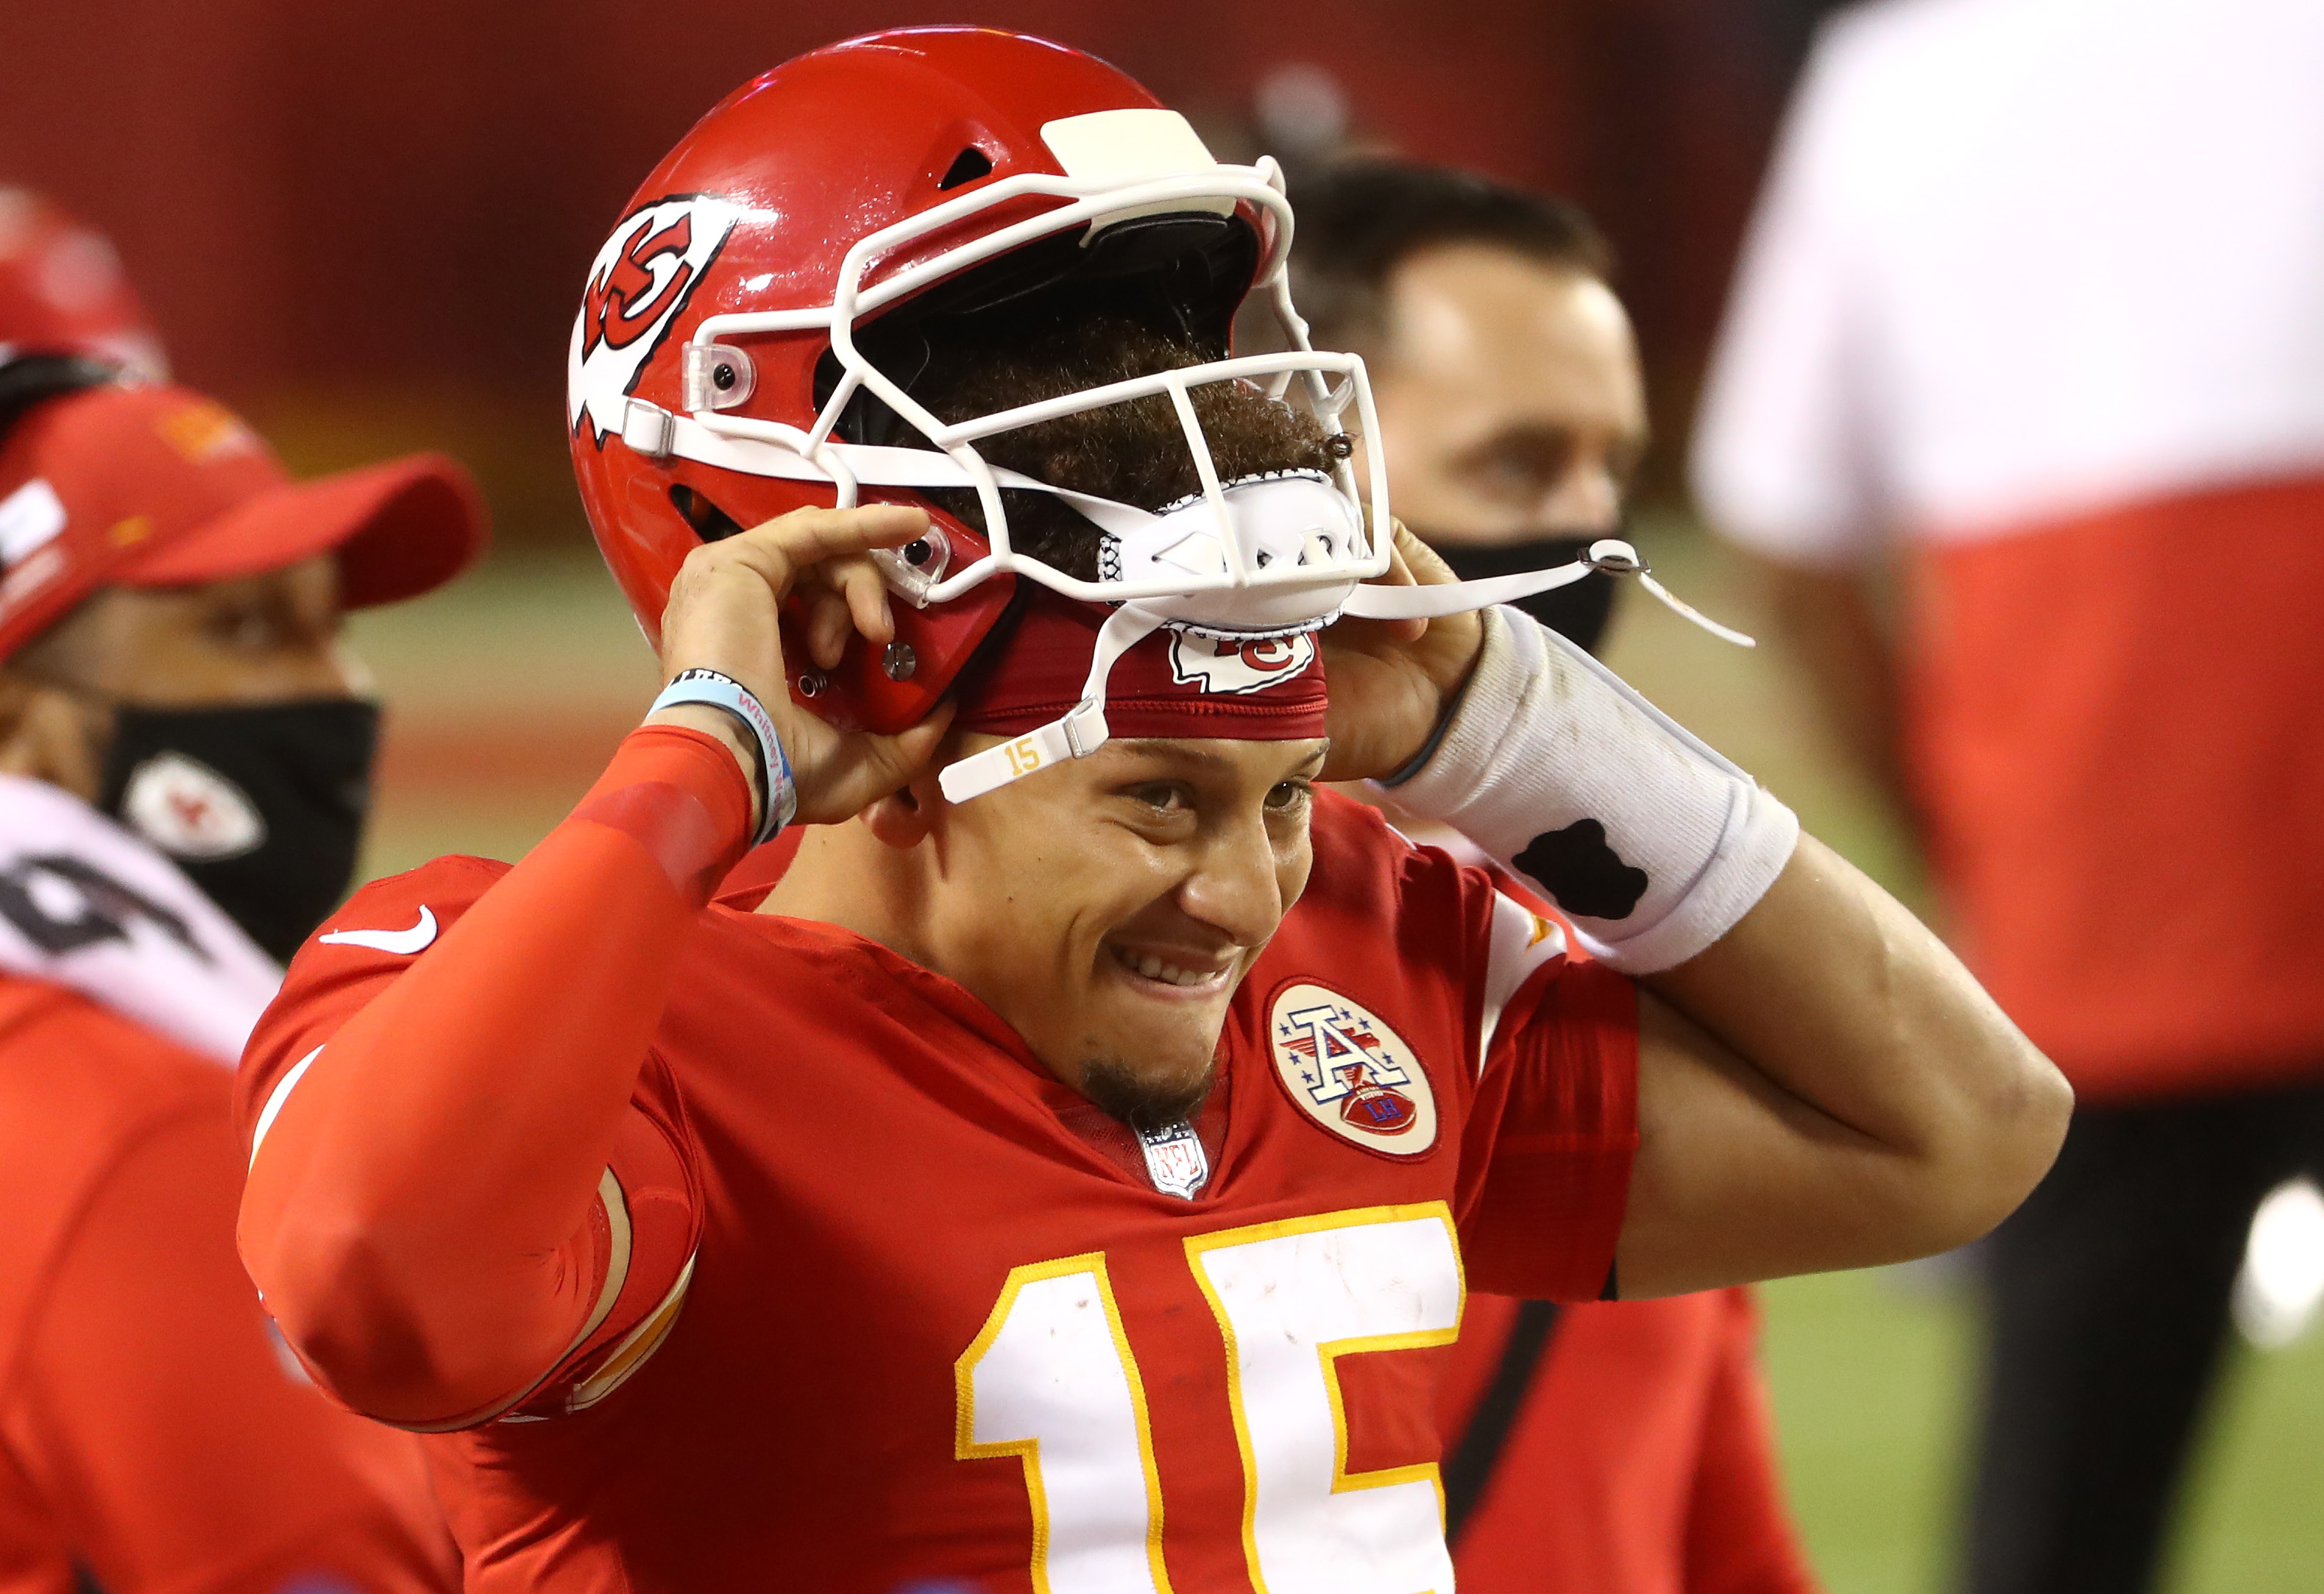 Patrick Mahomes puts his helmet back on